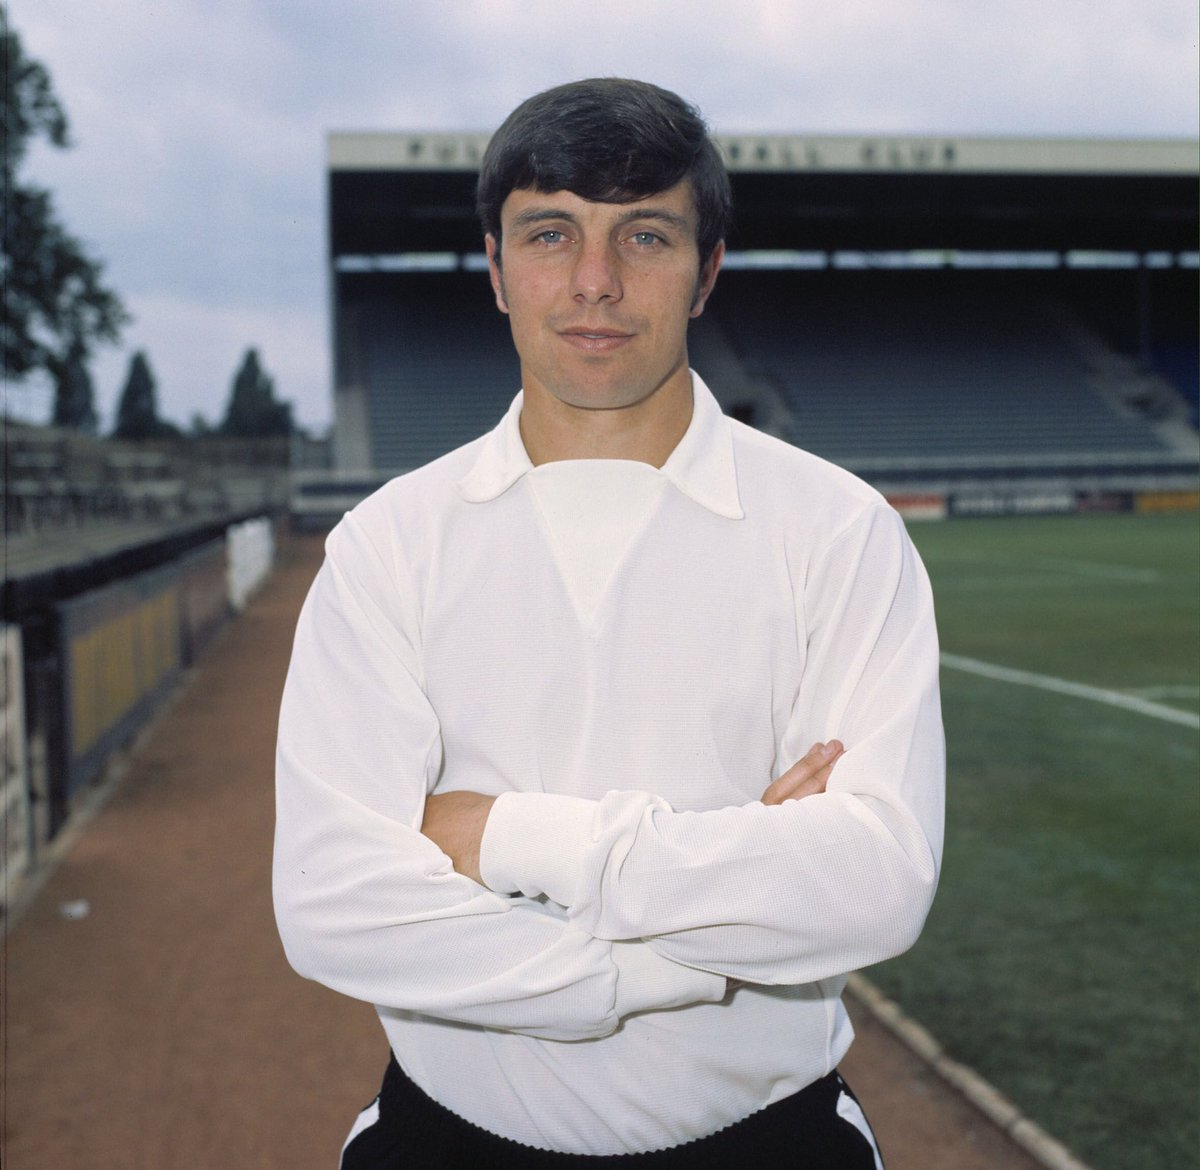 Awful news that former @FulhamFC player Jimmy Conway has passed away. Jimmy made 360 appearances for the club over ten years & played in the 1975 FA Cup final. Our condolences to his family. At the Cottage tomorrow, we'll pay tribute to a club legend revered by everyone at Fulham